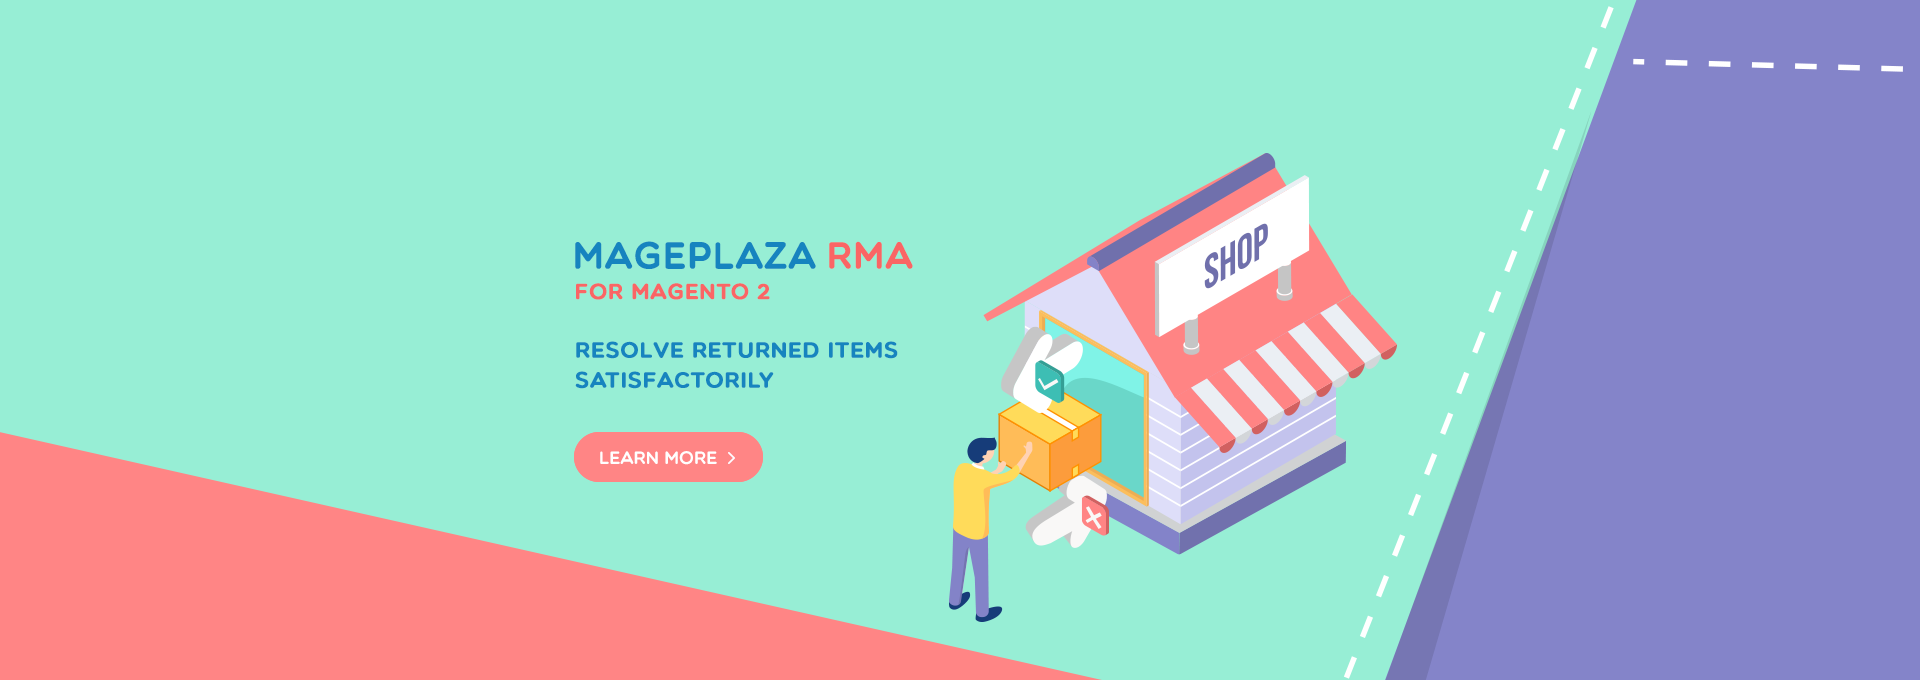 How to manage return requests by Magento 2 RMA